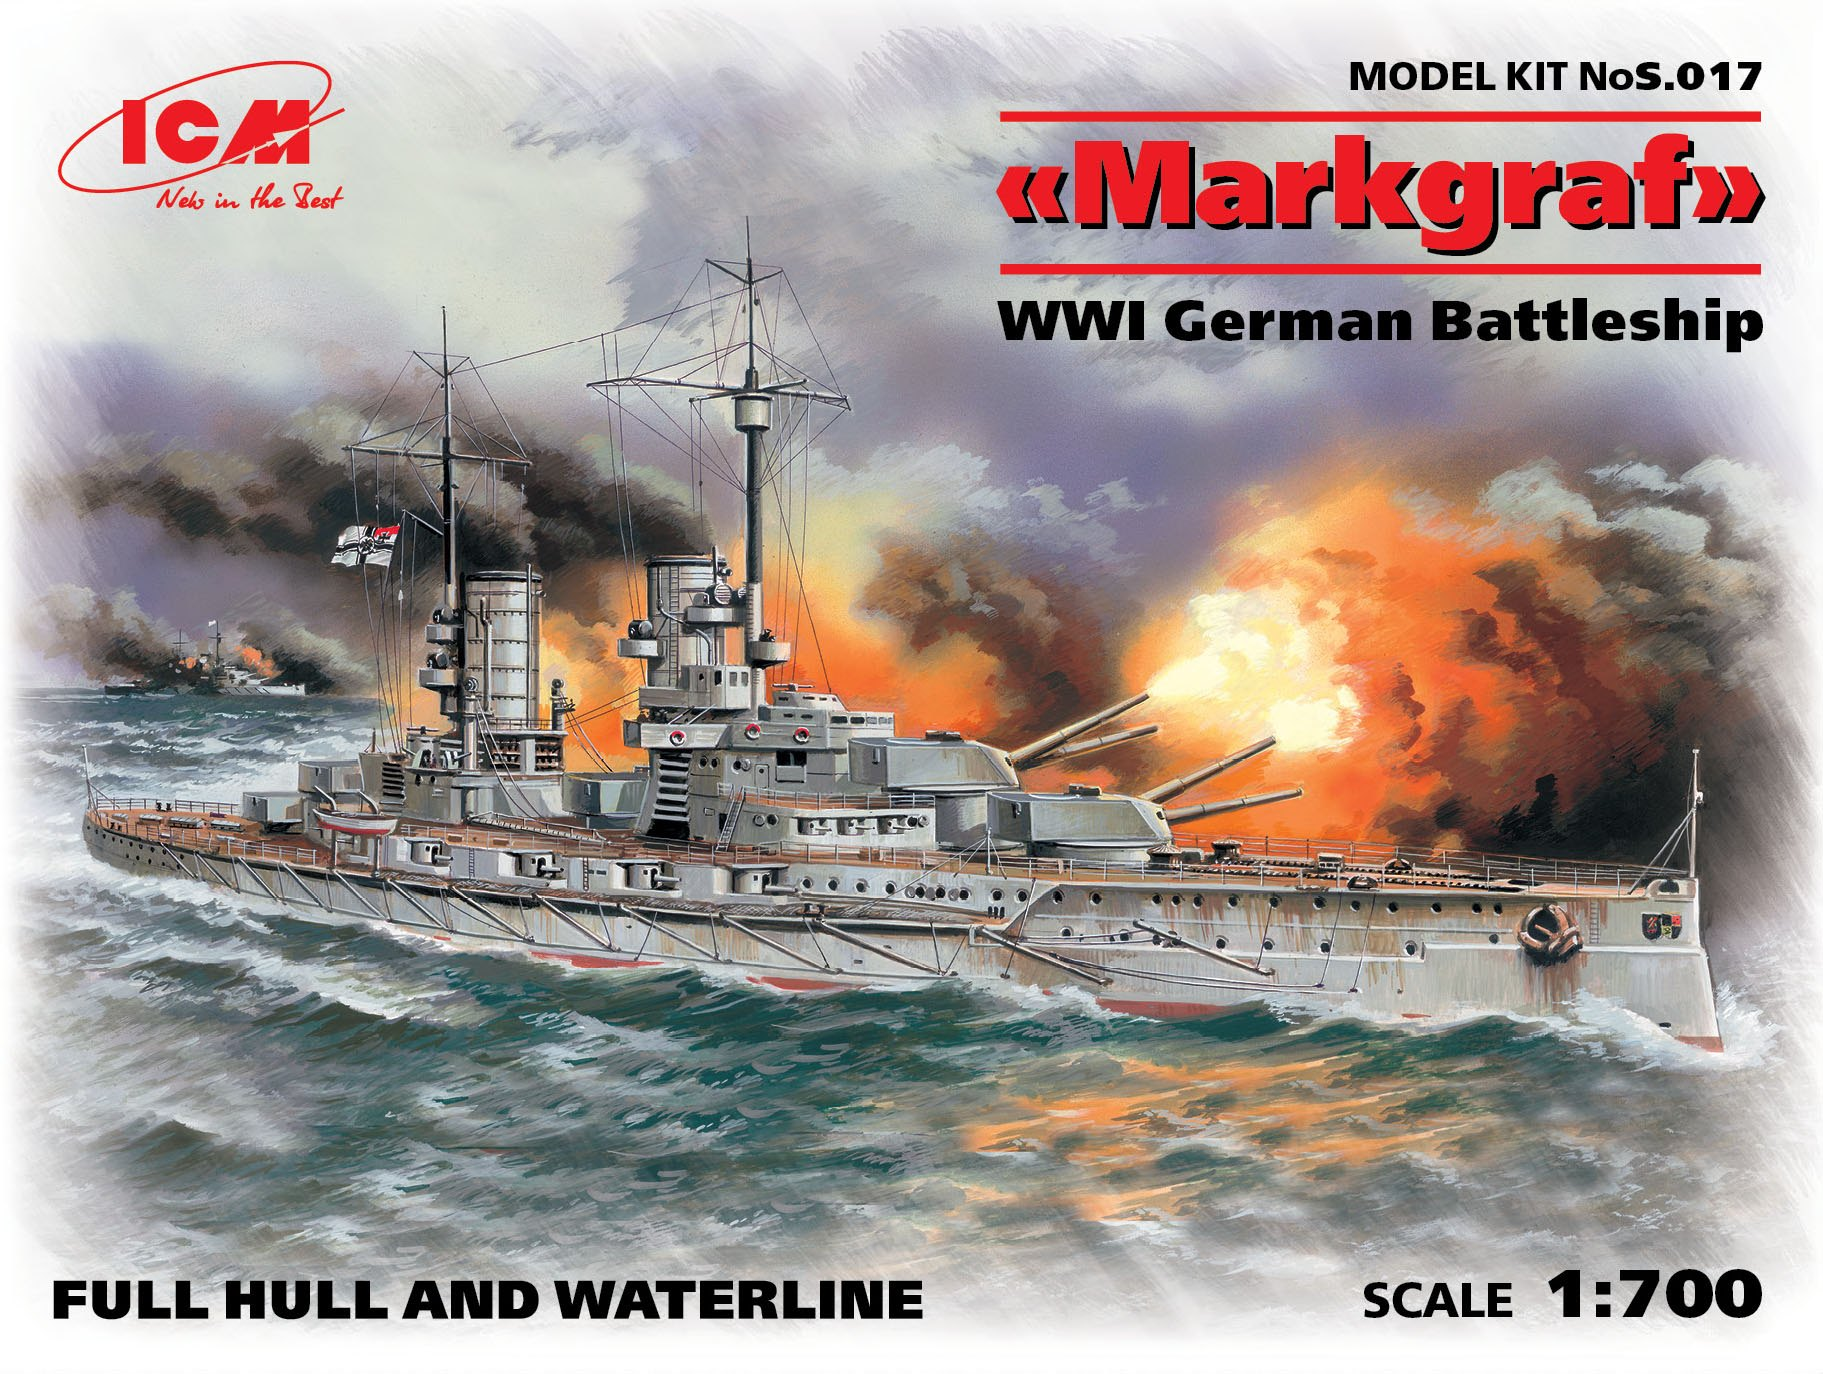 ICM Markgraf (full hull & waterline), WWI German Battleship